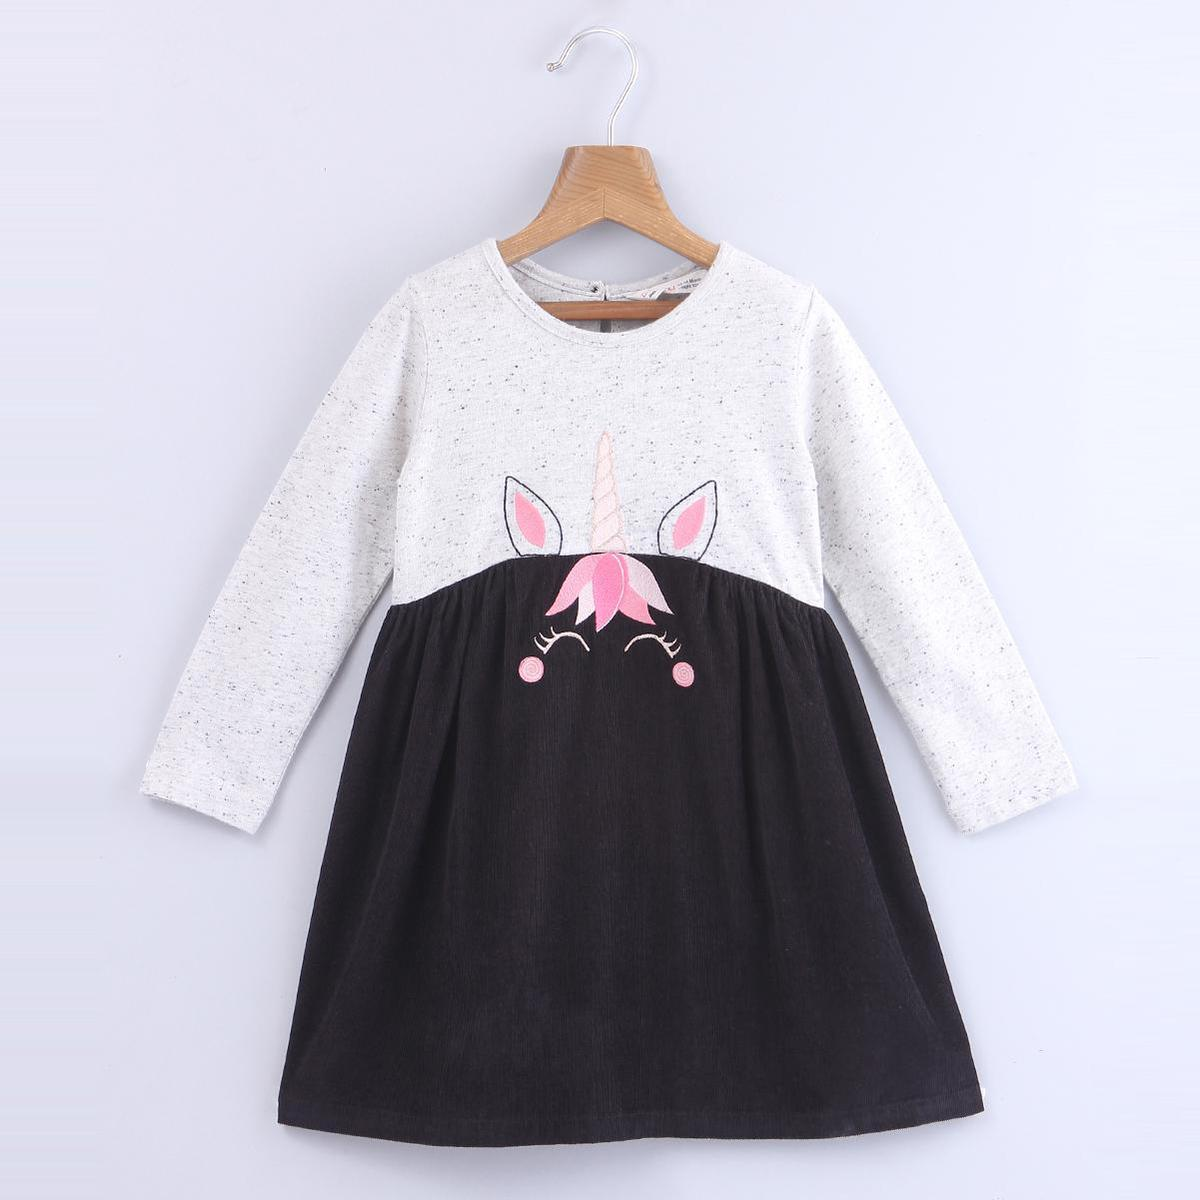 Beebay - Black Colored Unicorn Embroidery Mix-media Cotton Dress For Kids Girls